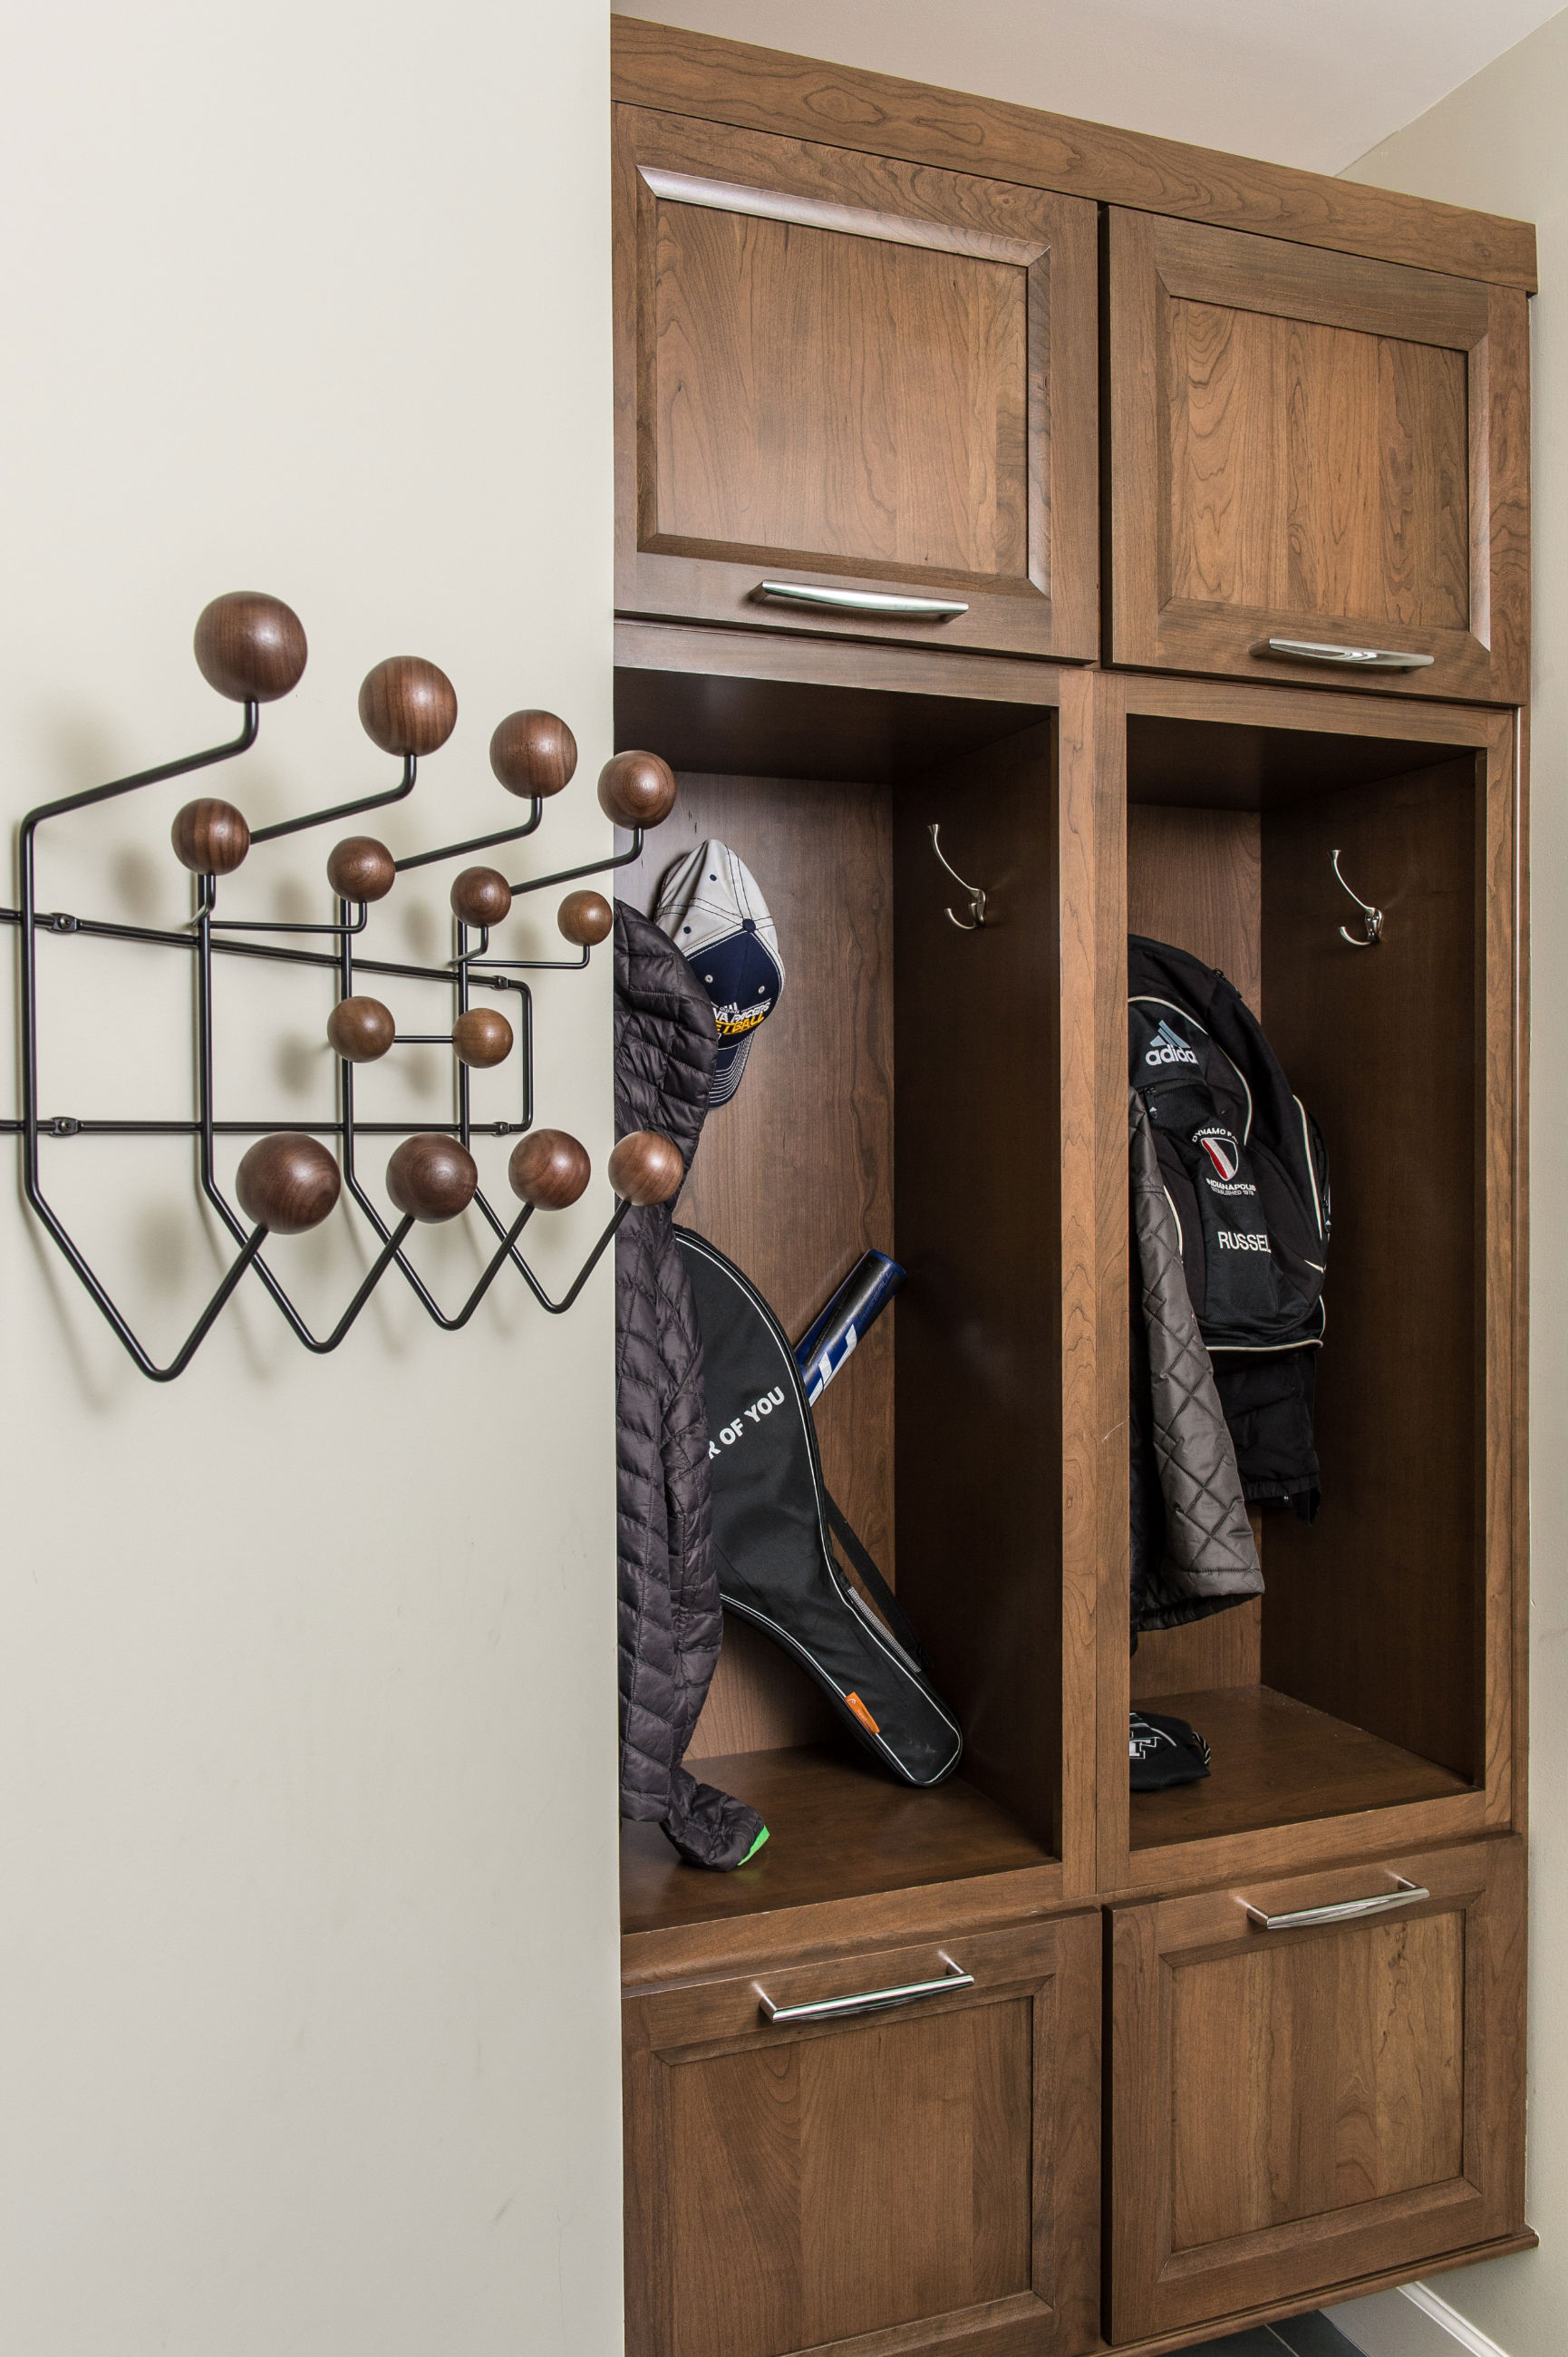 Mudroom Cubbies are custom designed and fabricated. Laundry Cabinetry is Aristokraft